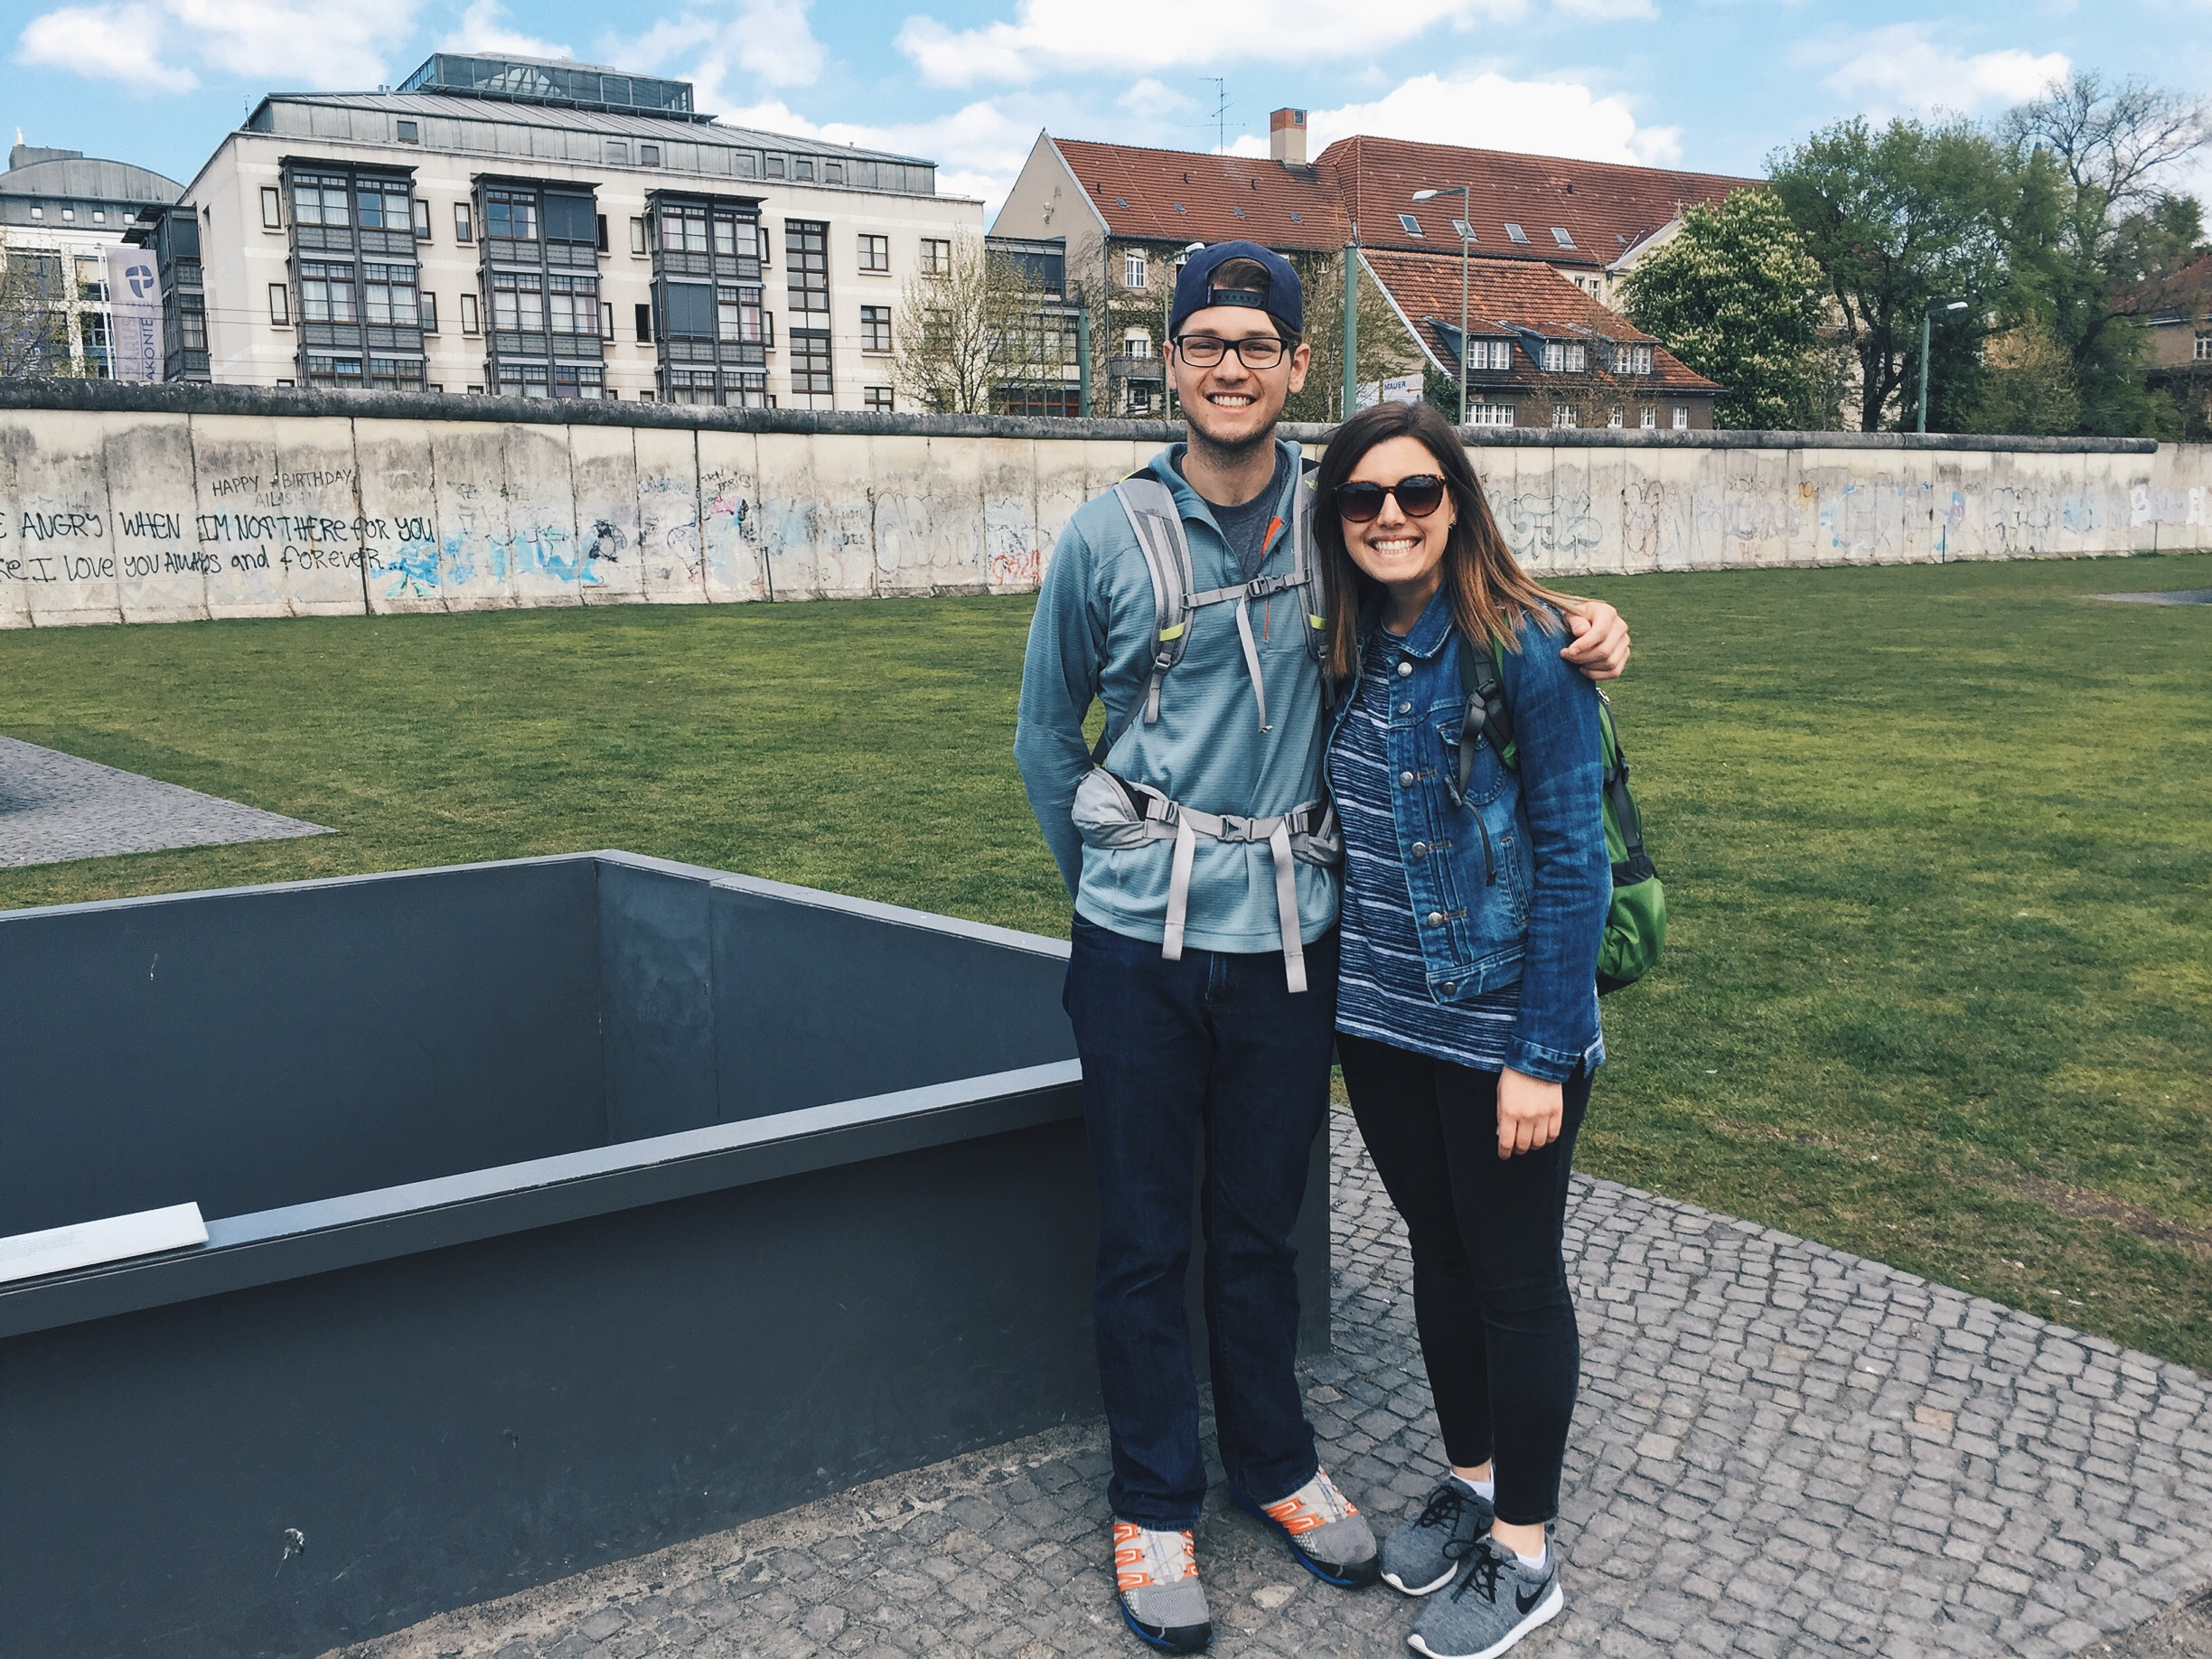 My brother, Greg, and I in front of the Berlin Wall - April 2016